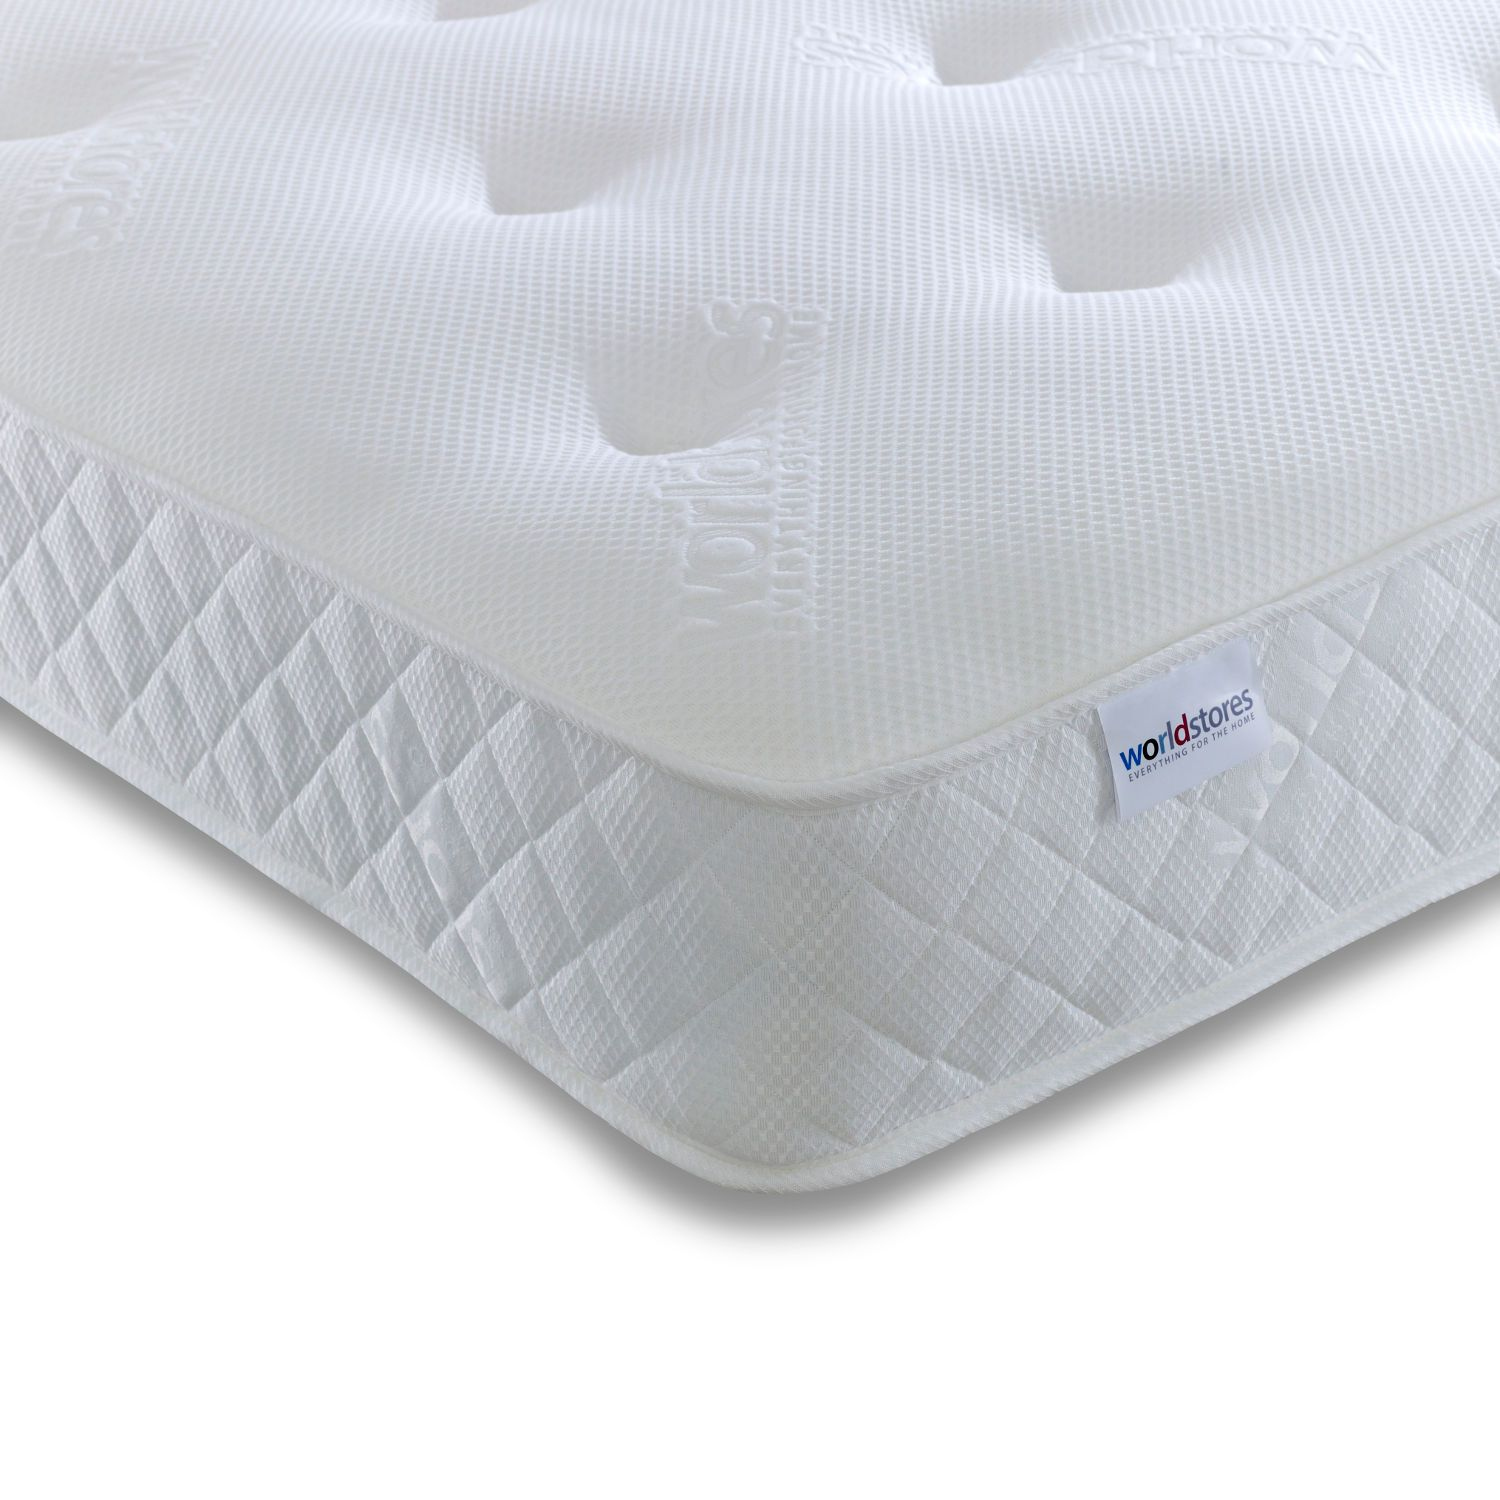 Mattresses Mattresses For Sale Mattresses For Sale Uk Mattresses For Sale Near Me M Memory Mattress King Size Memory Foam Mattress Double Mattress Size